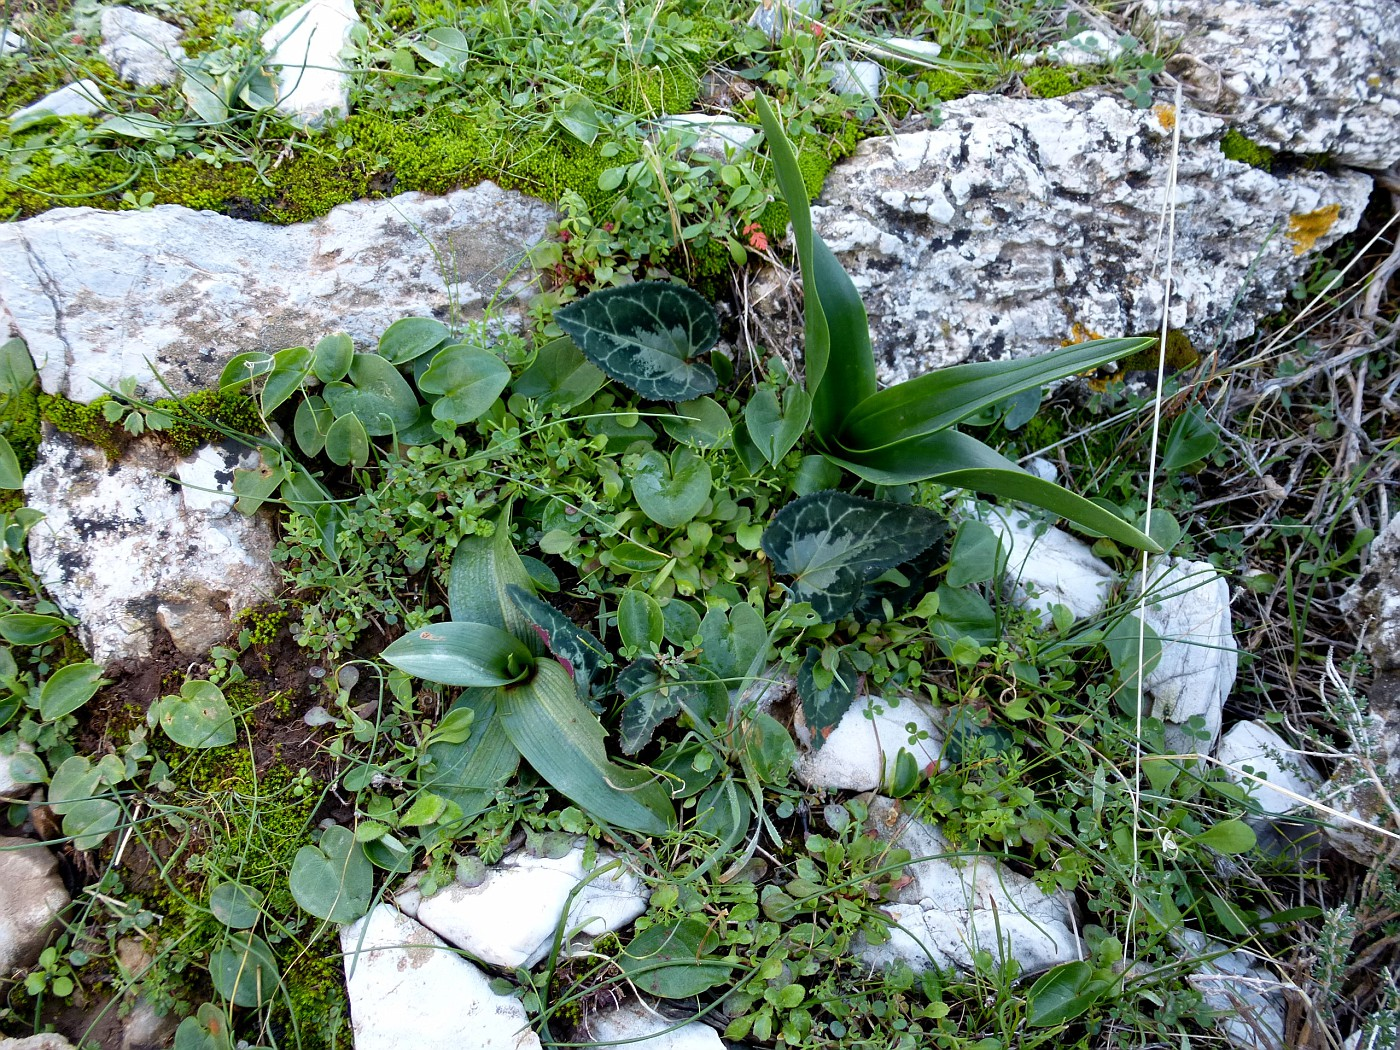 Arisarum, Ophrys, Urginea, Cyclamen